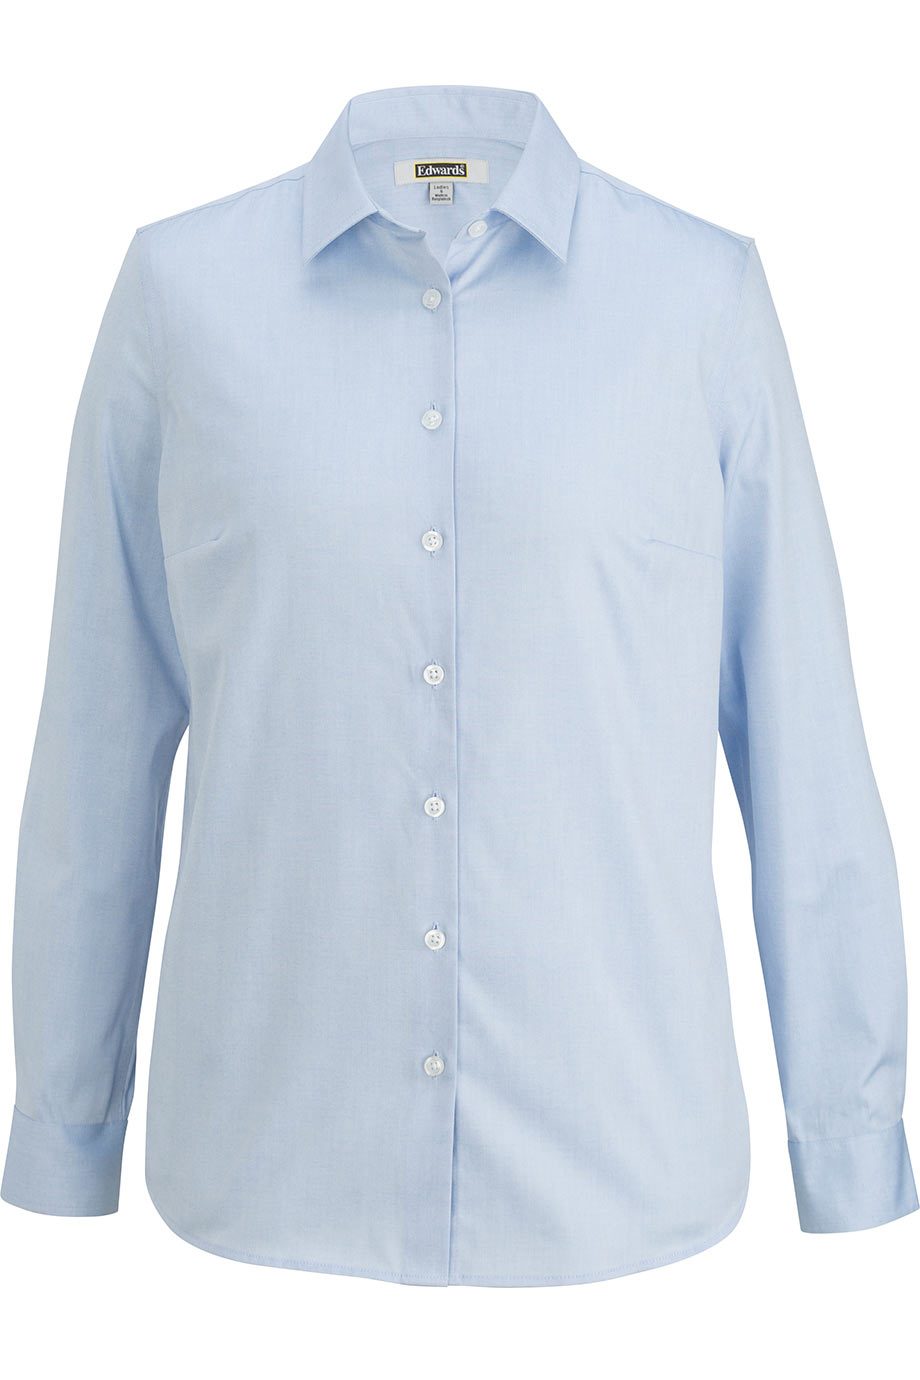 Edwards Ladies Oxford Wrinkle-Free Shirt